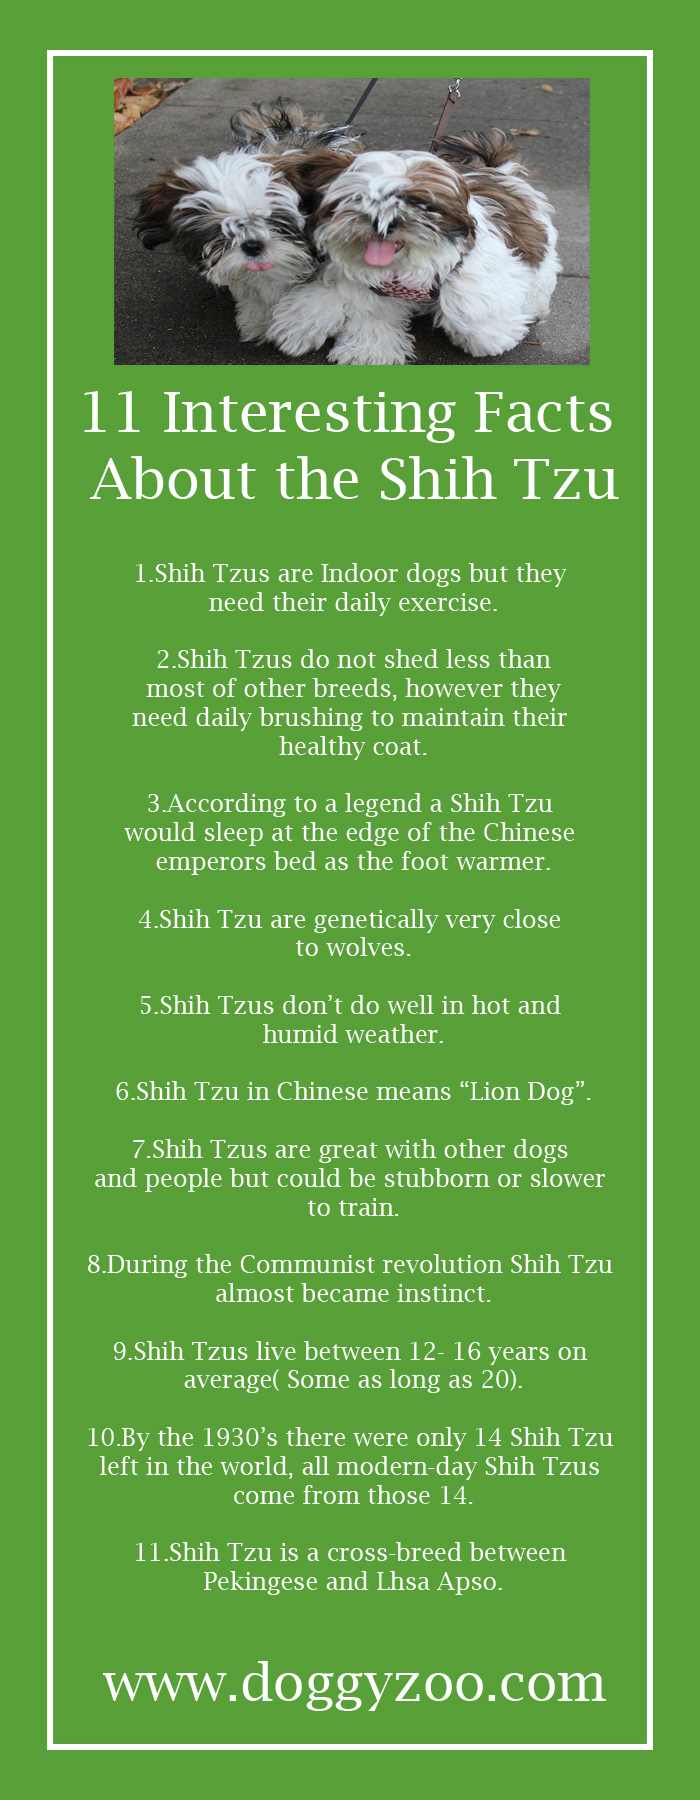 facts about shih tzu 11 interesting facts about the shih tzu doggyzoo 4360